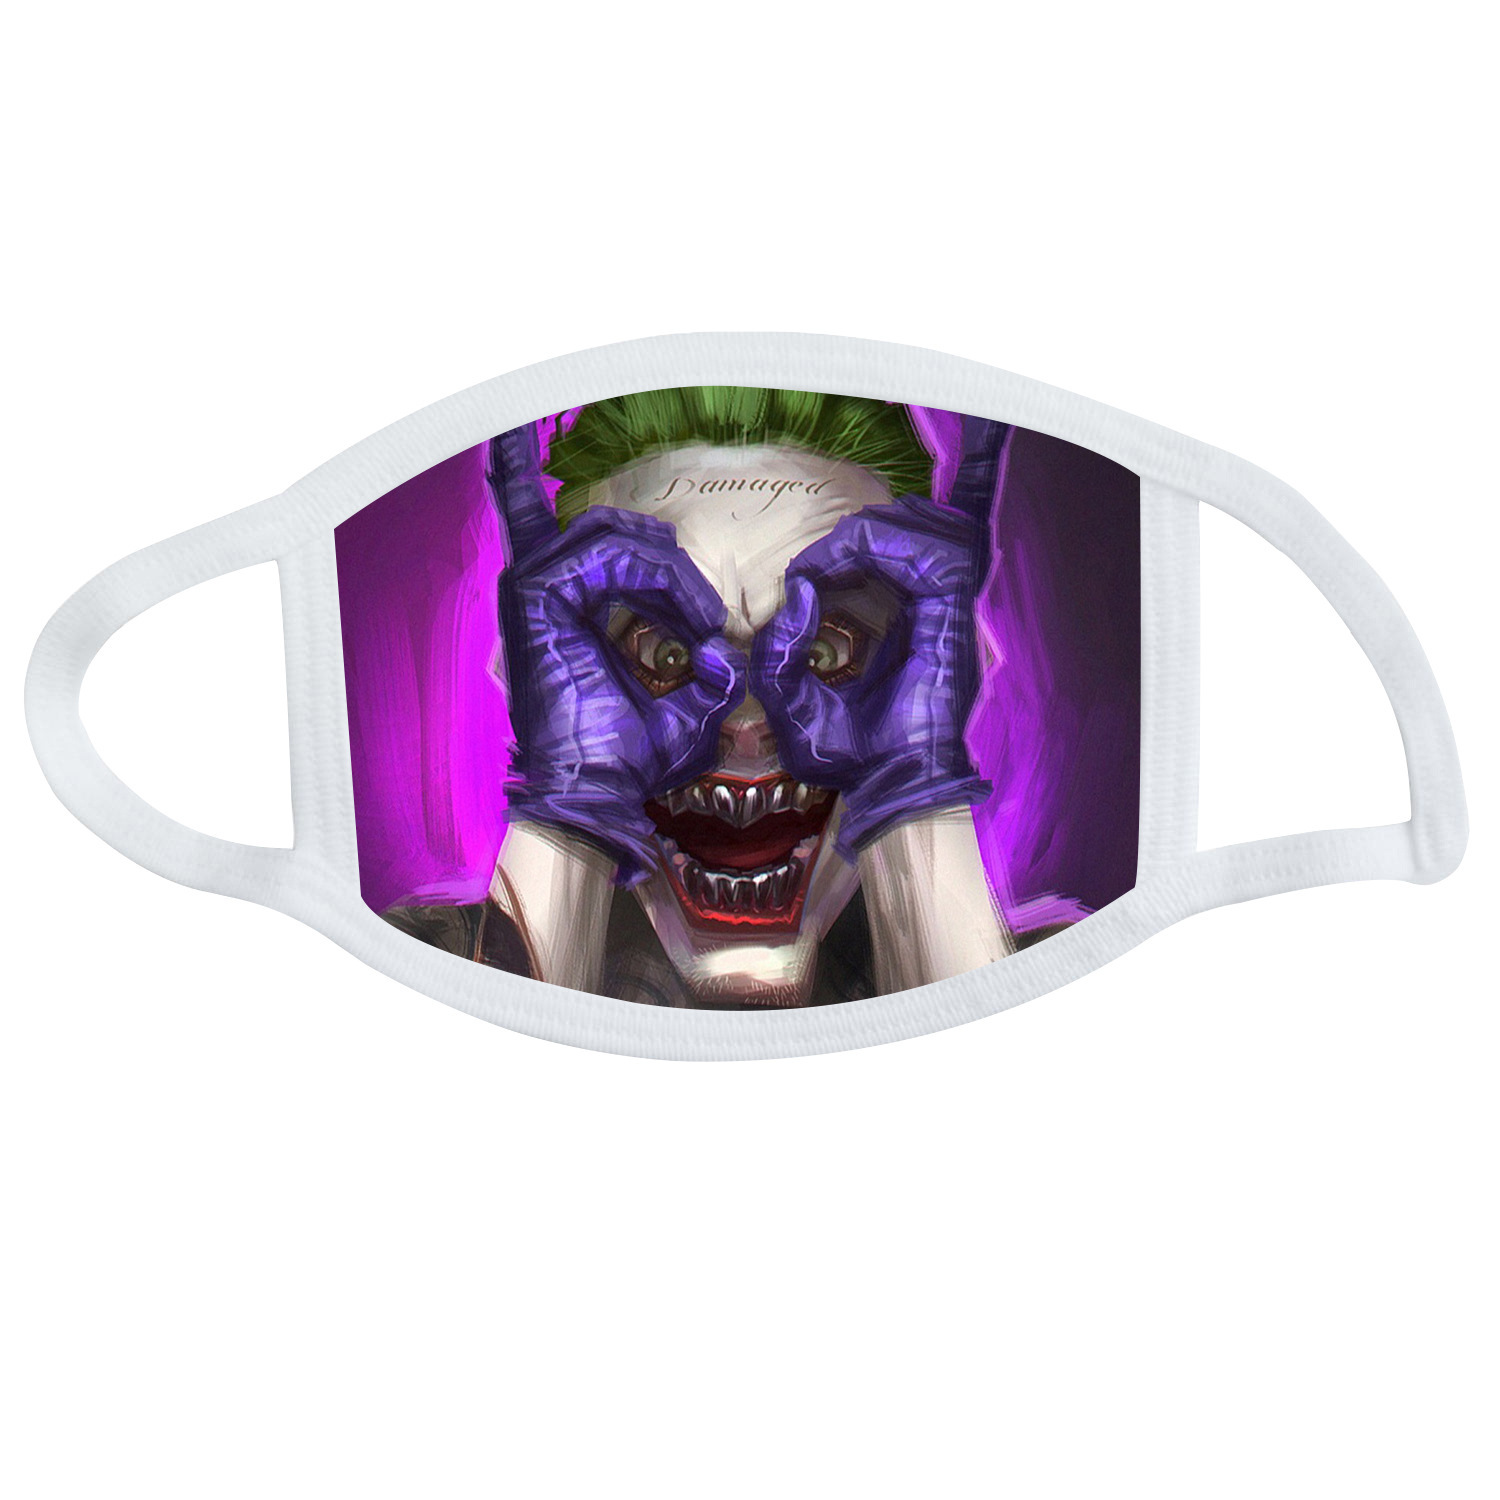 Joker Peripheral DC Clown Masks Anti-Car Exhaust Hanging Ear Masks Dust Cloth Fabric Masks